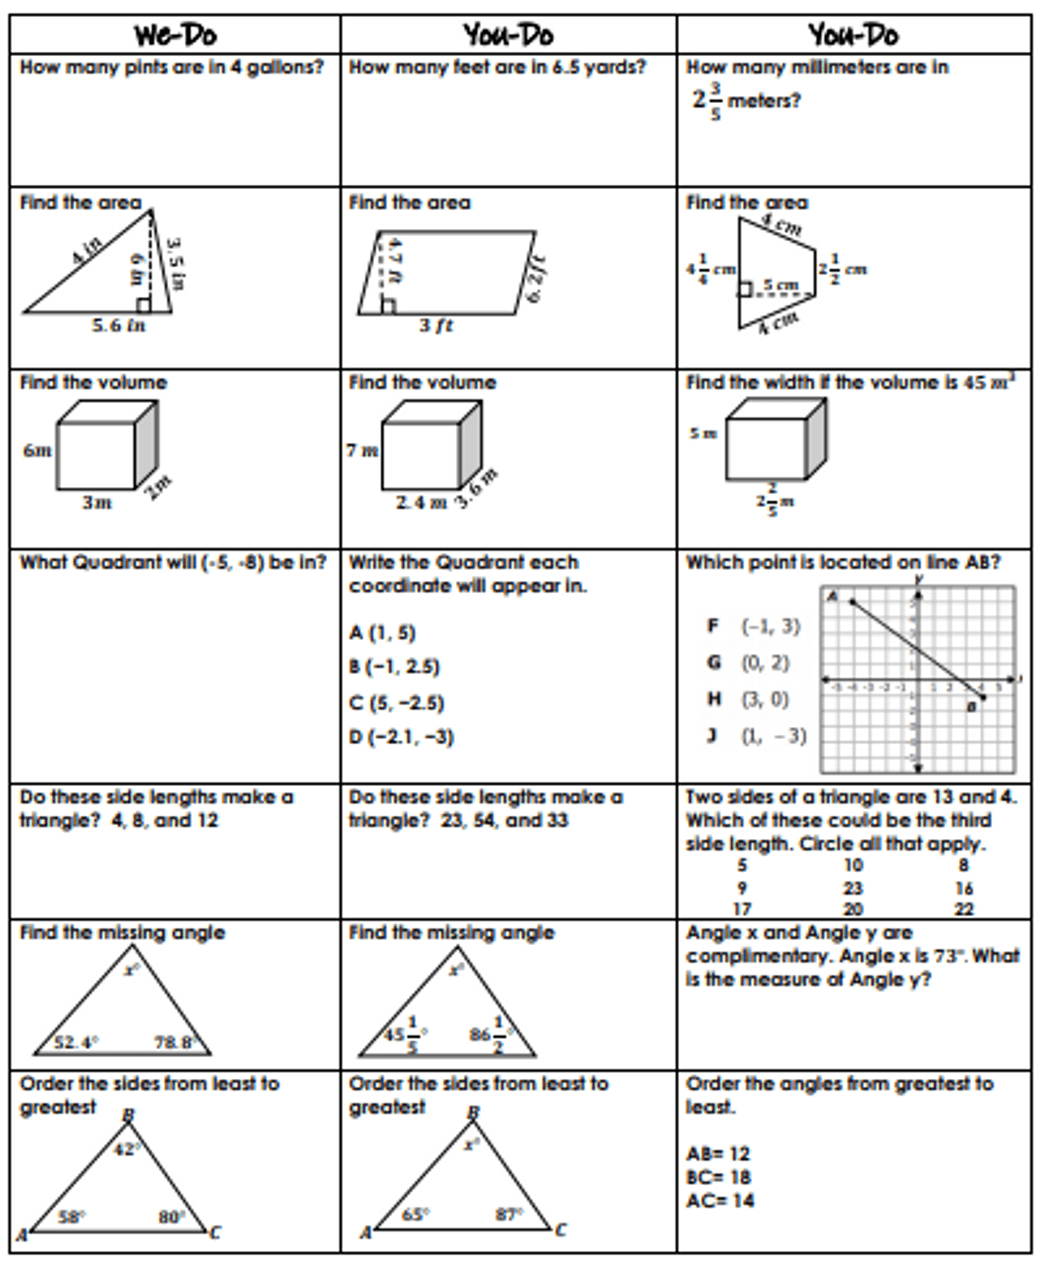 6th Grade Geometry Review- We-Do [ 1280 x 1040 Pixel ]